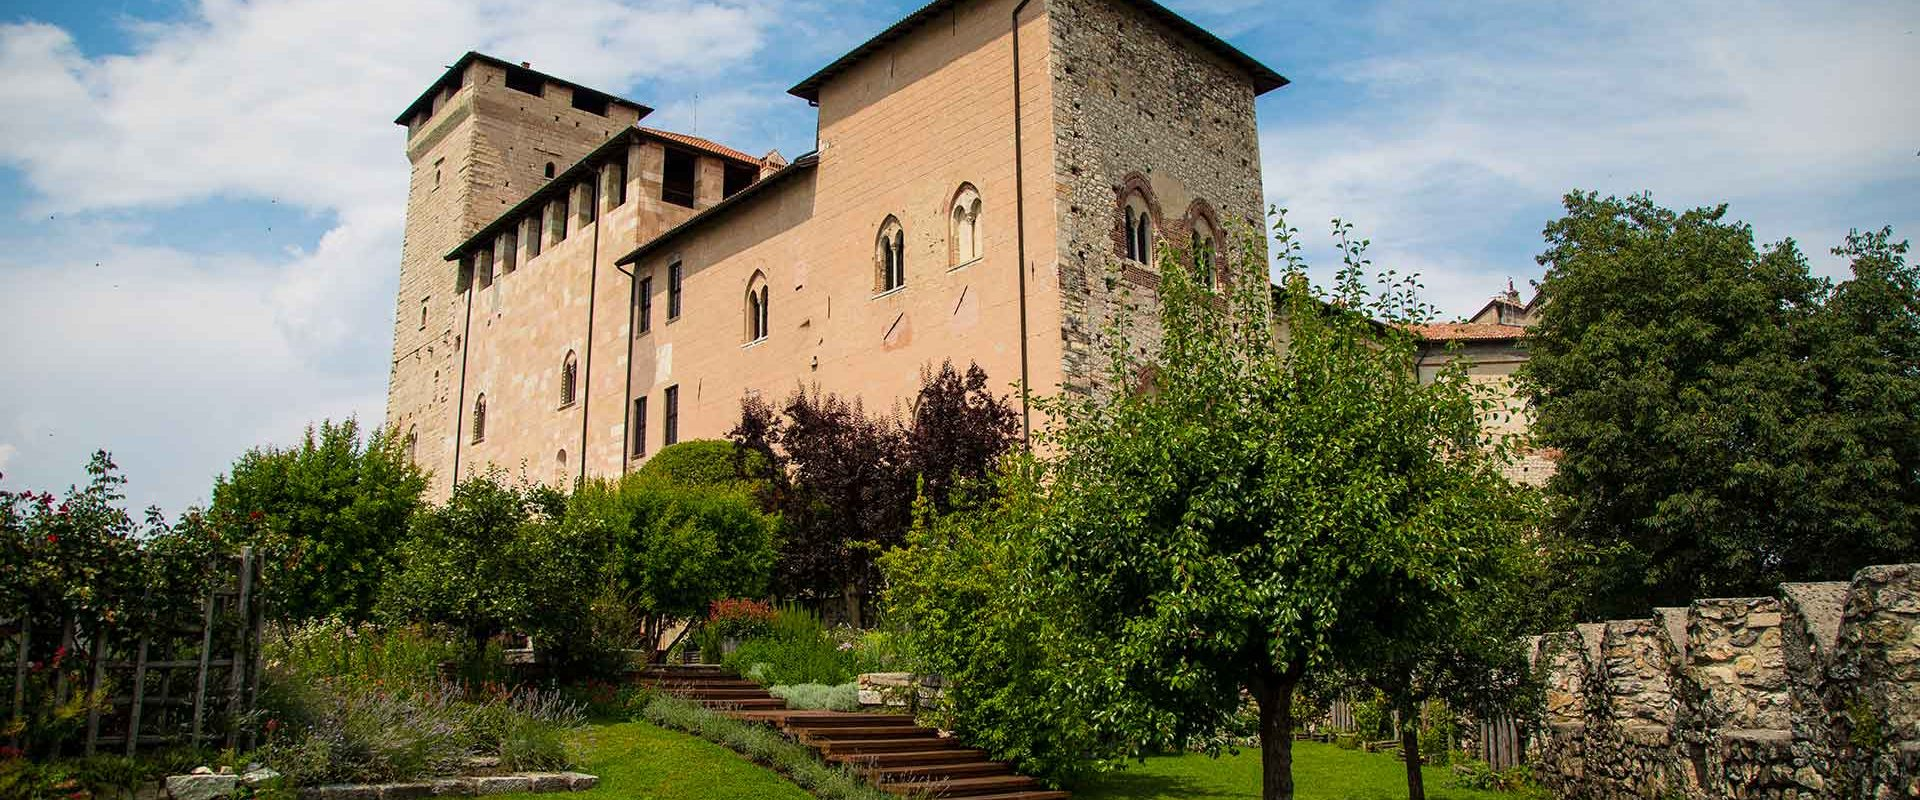 The medieval-inspired garden of the Rocca di Angera